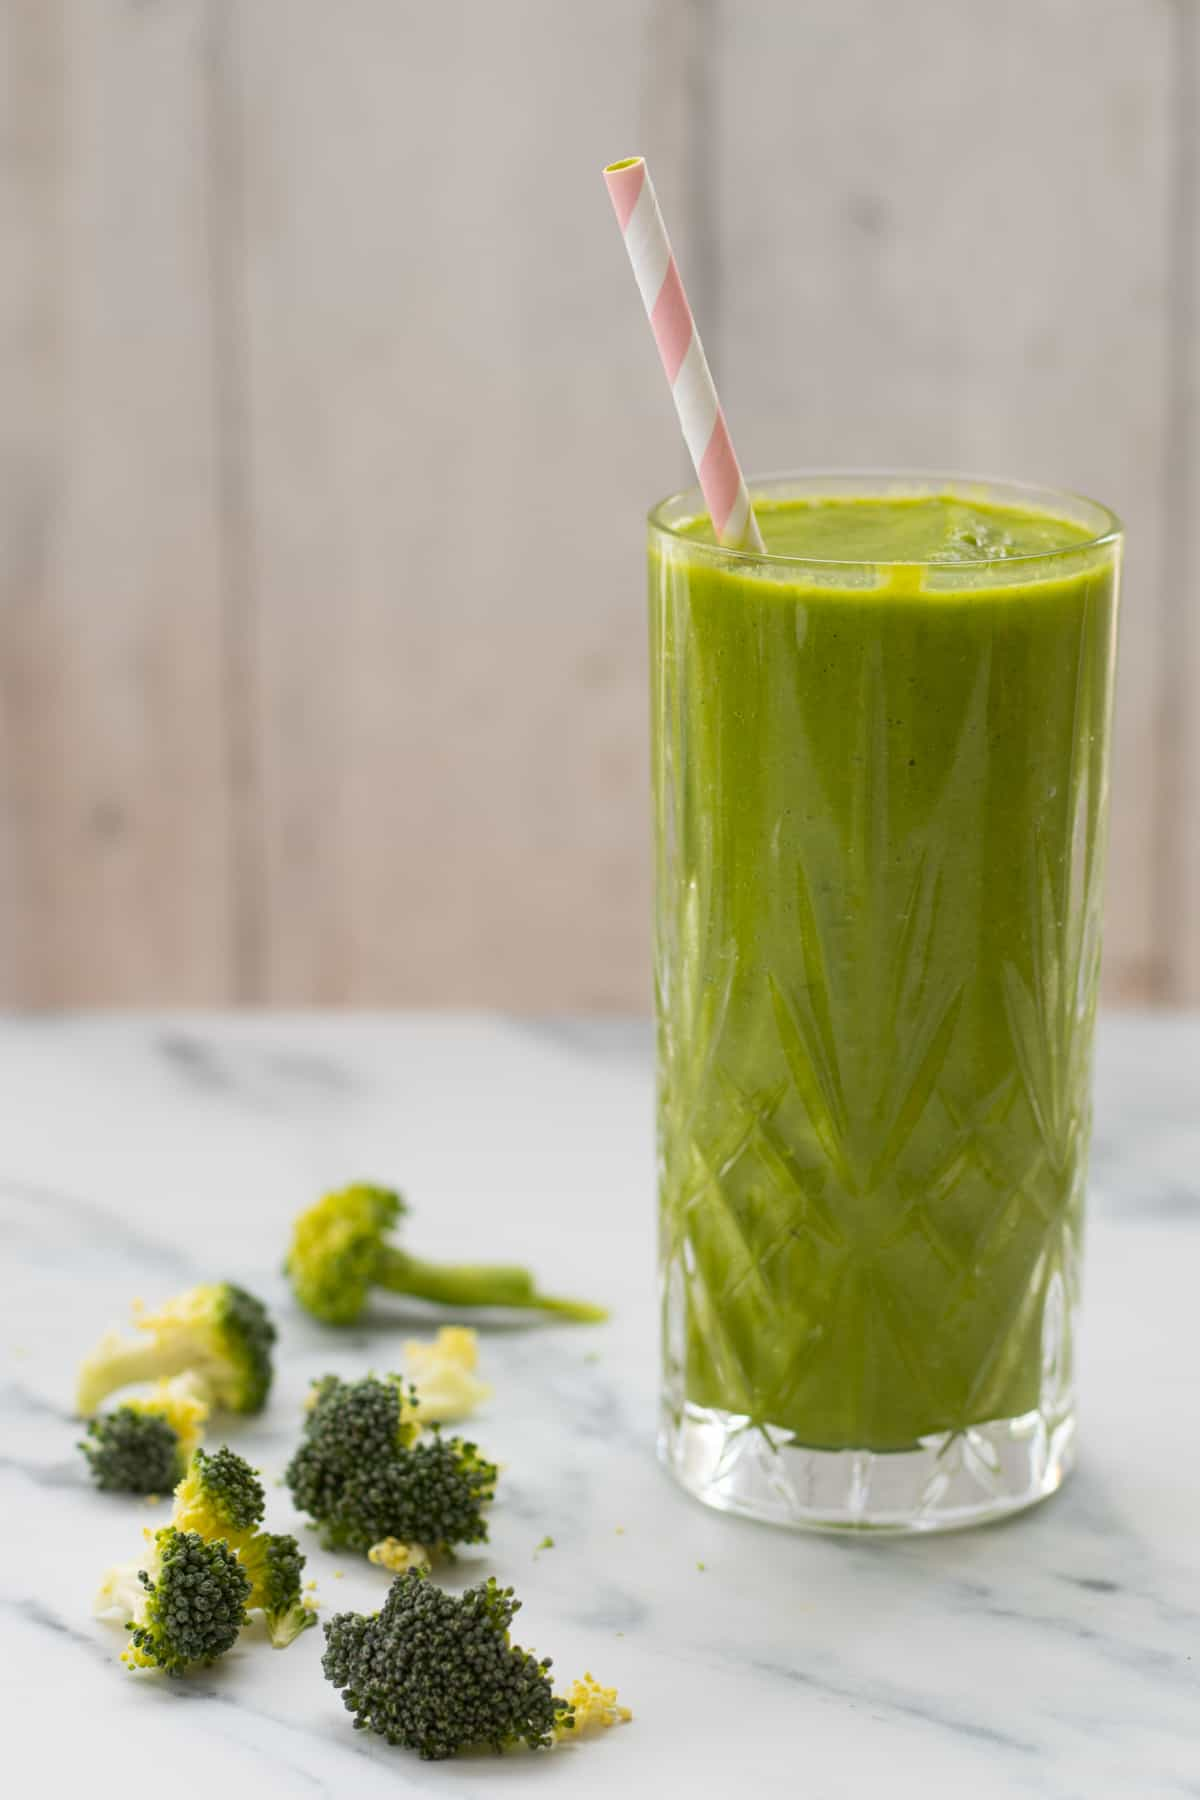 side view of a broccoli smoothie with some broccoli next to it